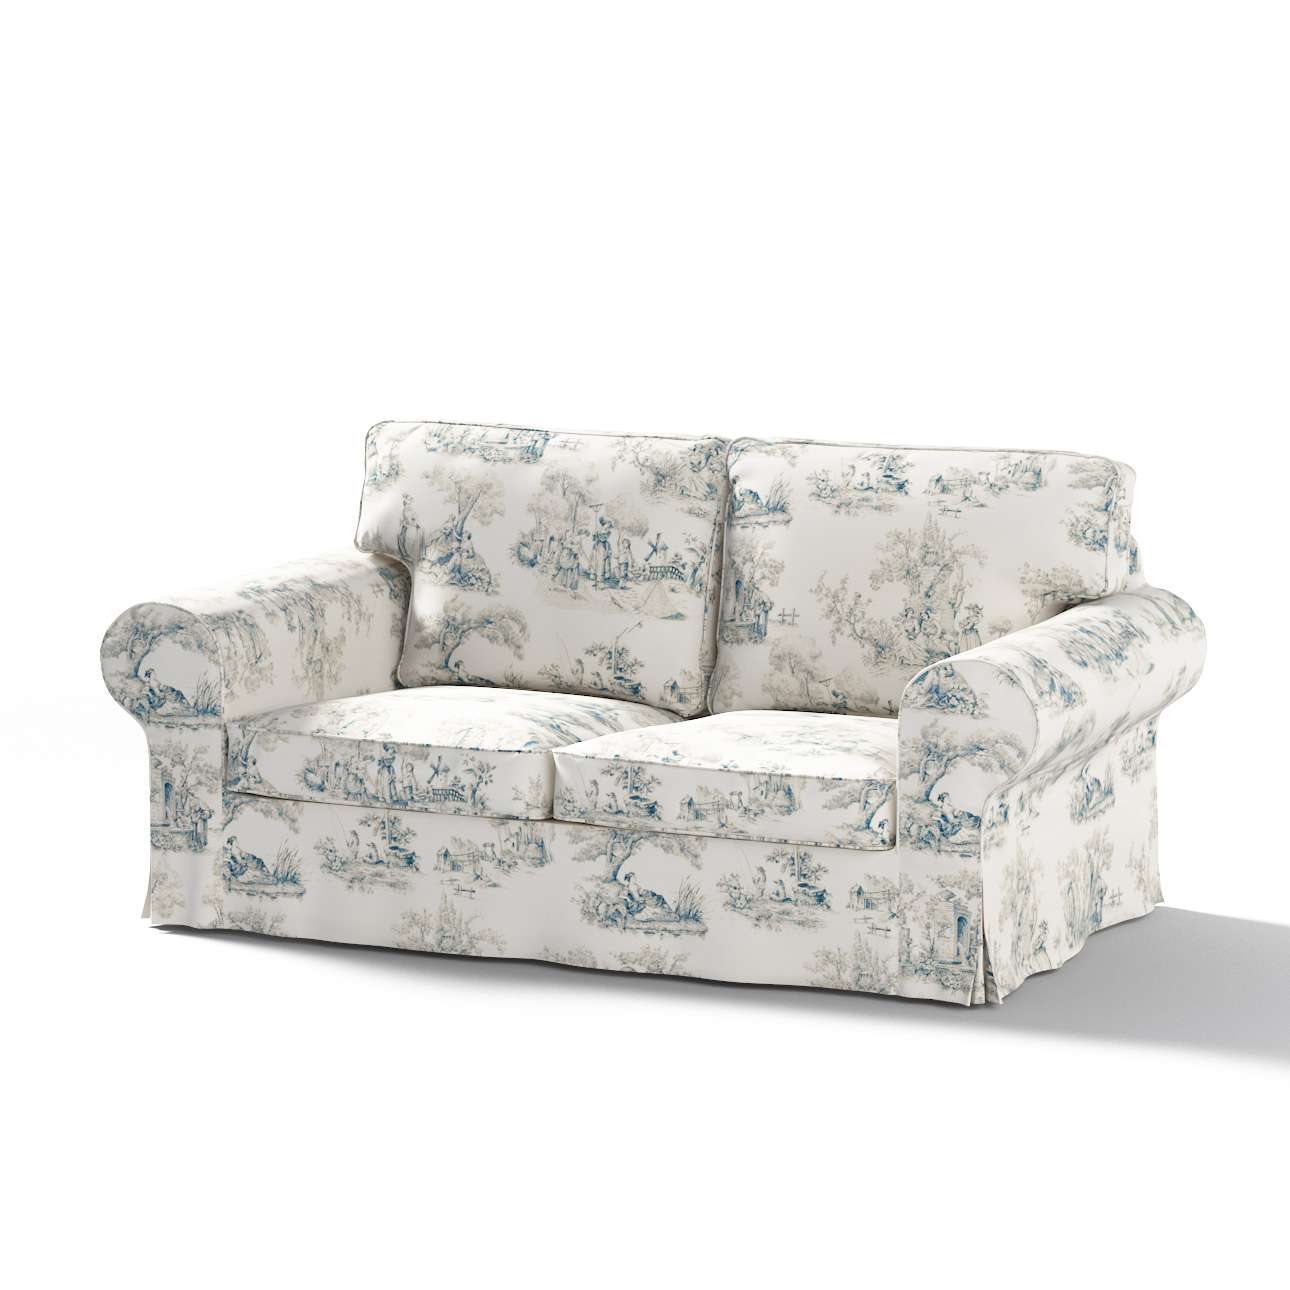 Ektorp 2-seater sofa cover in collection Avinon, fabric: 132-66